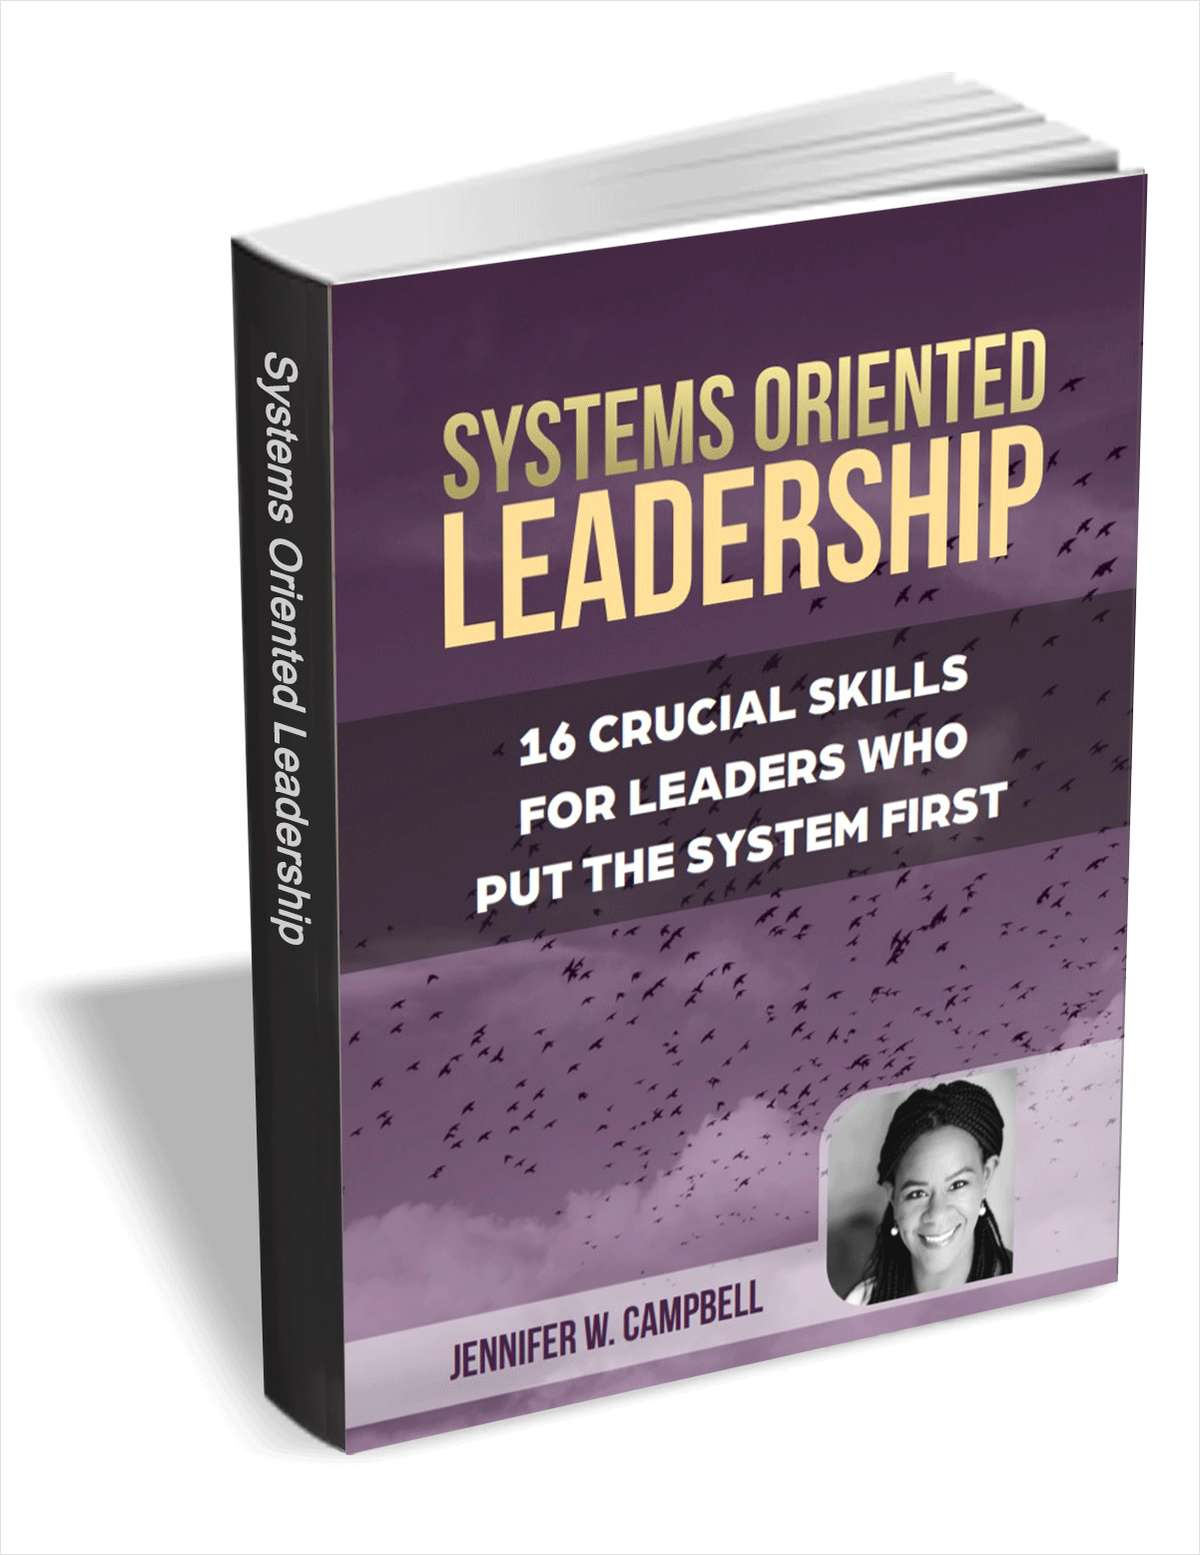 Systems Oriented Leadership - 16 Crucial Skills for Leaders Who Put the System First